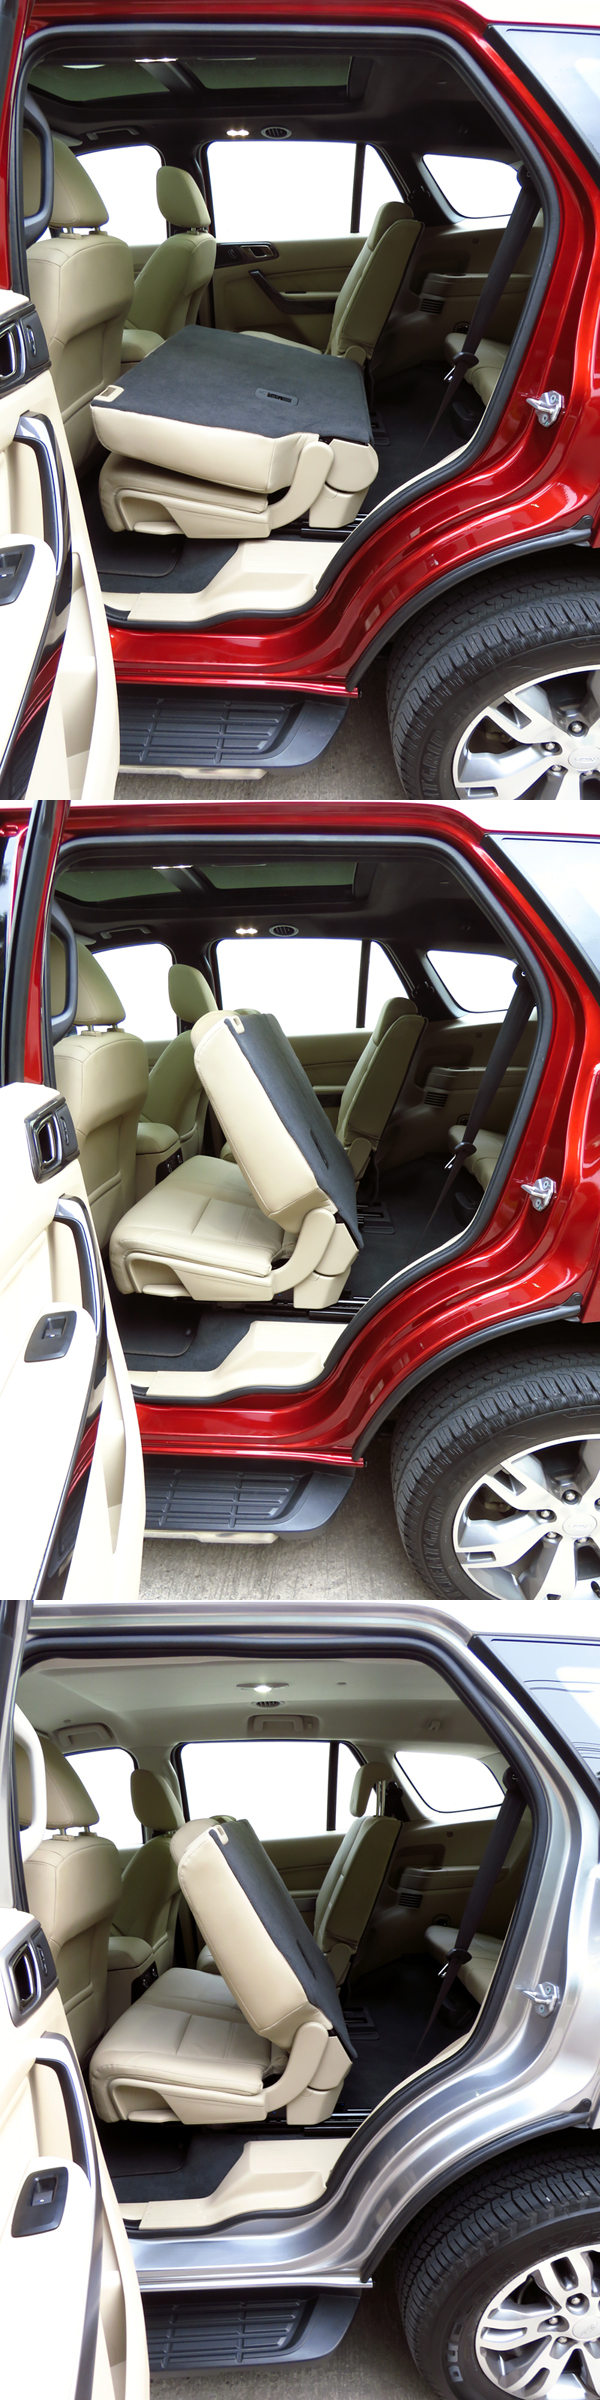 2015_07_10_Ford_Everest_Interior_06